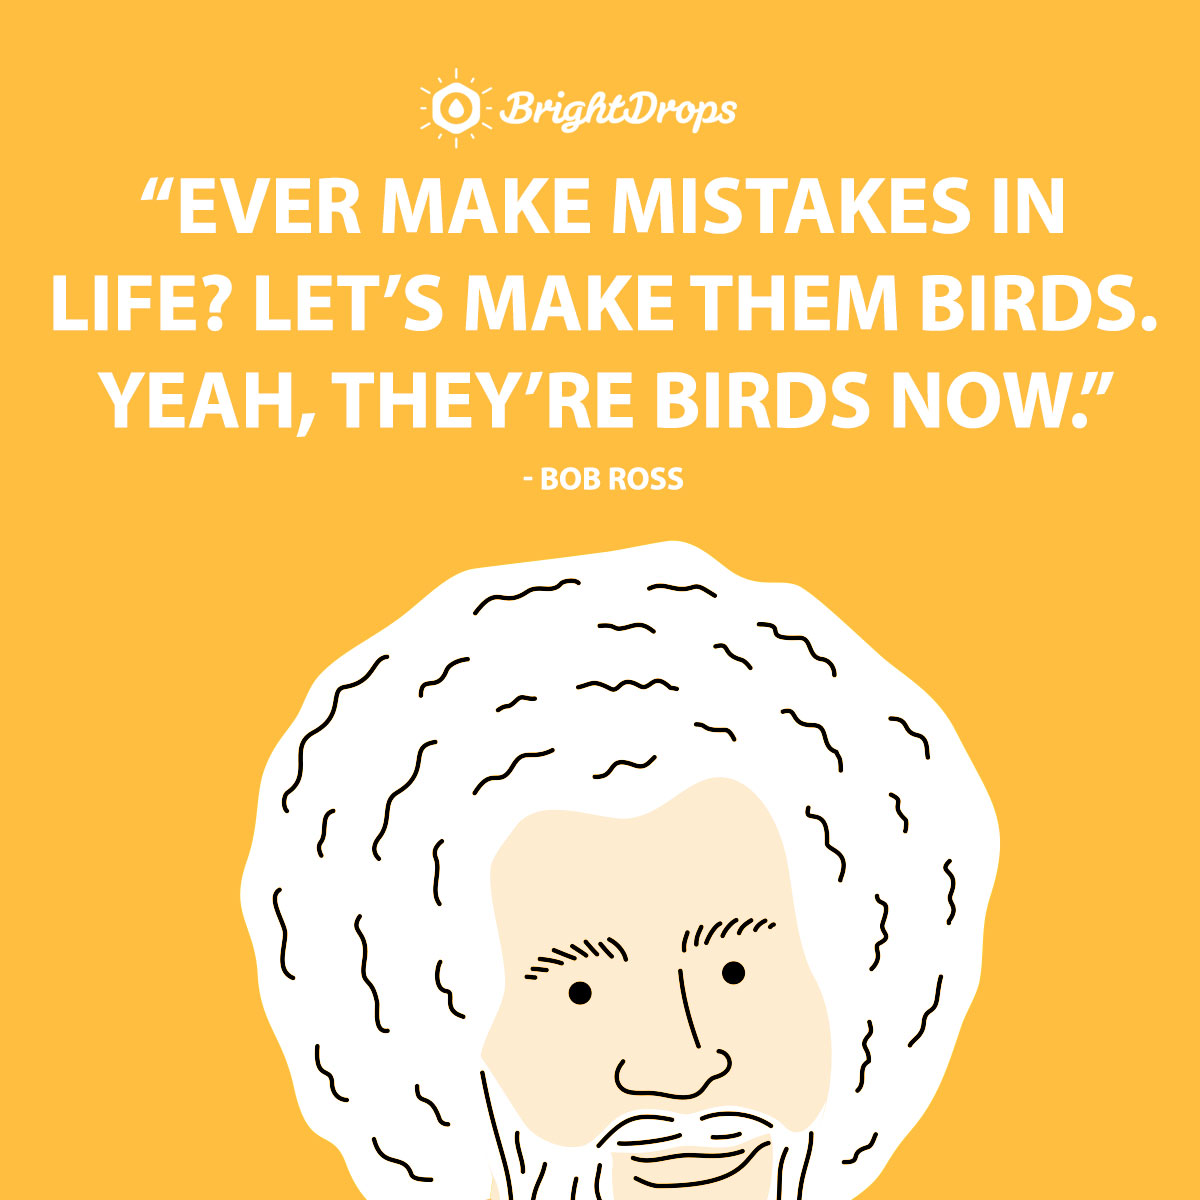 Ever make mistakes in life? Let's make them birds. Yeah, they're birds now. - Bob Ross